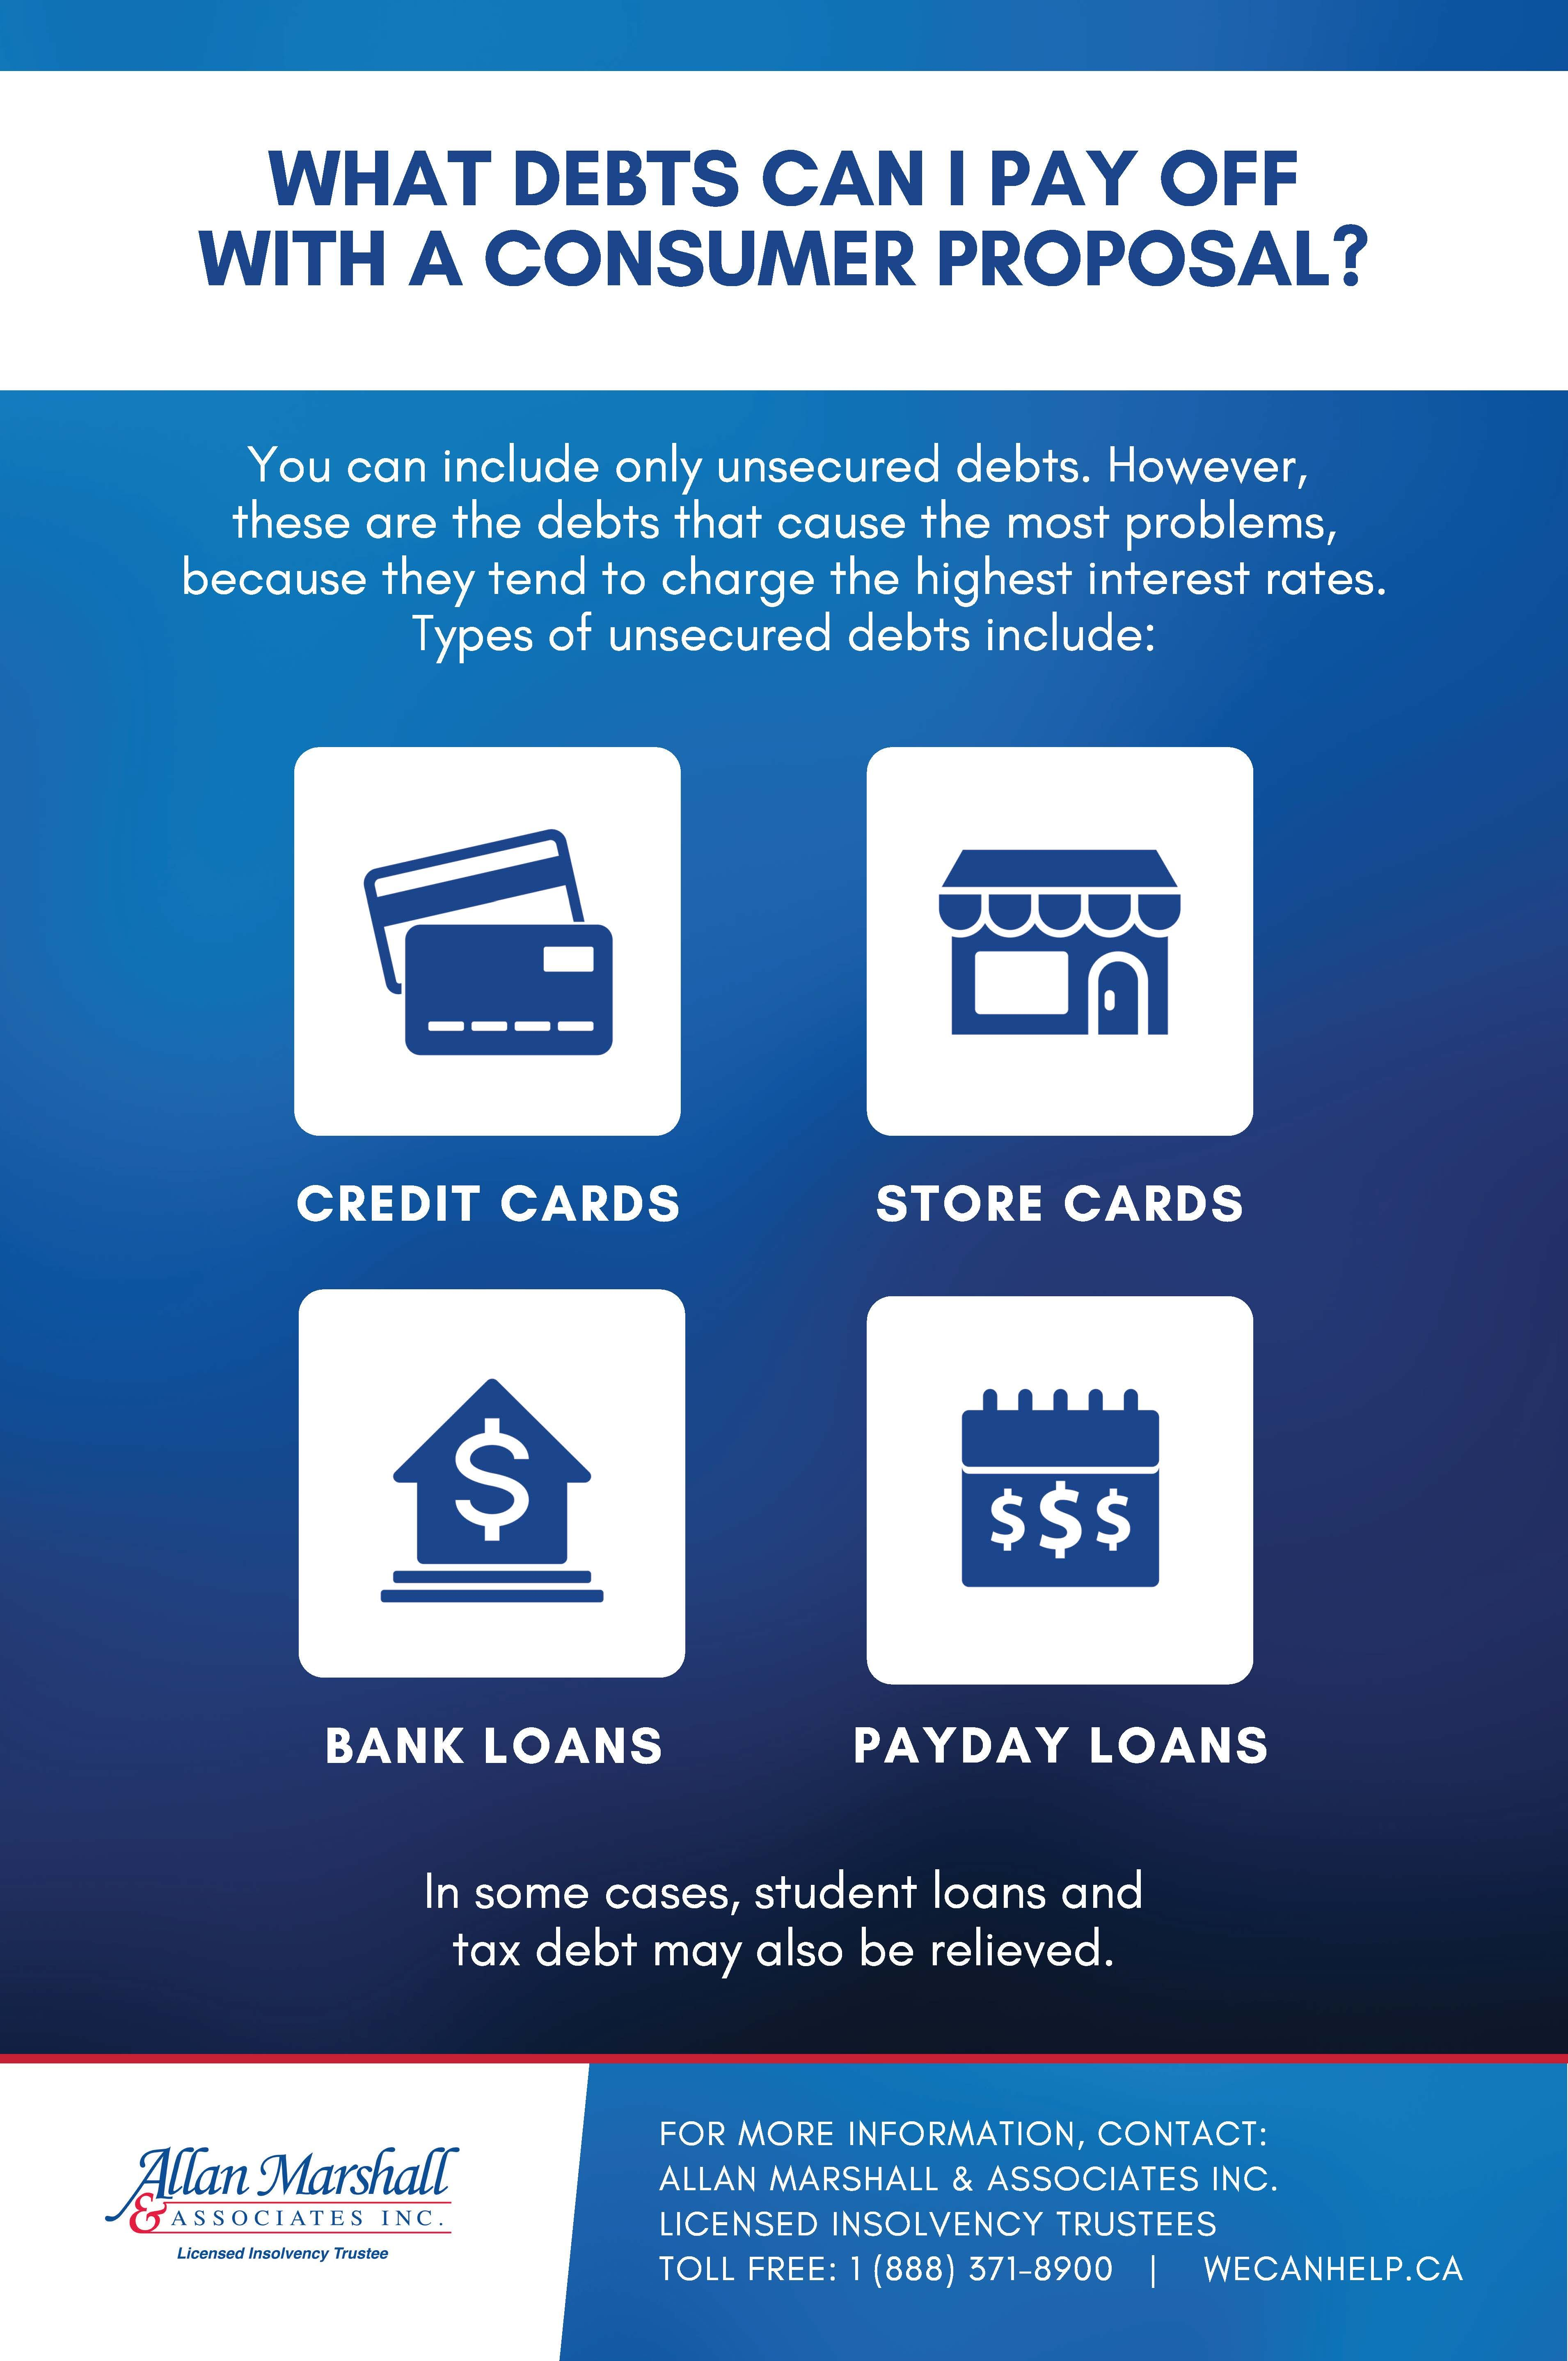 What Type Of Debt Can I Pay Off With A Consumer Proposal Debt Solutions Unsecured Debt Debt